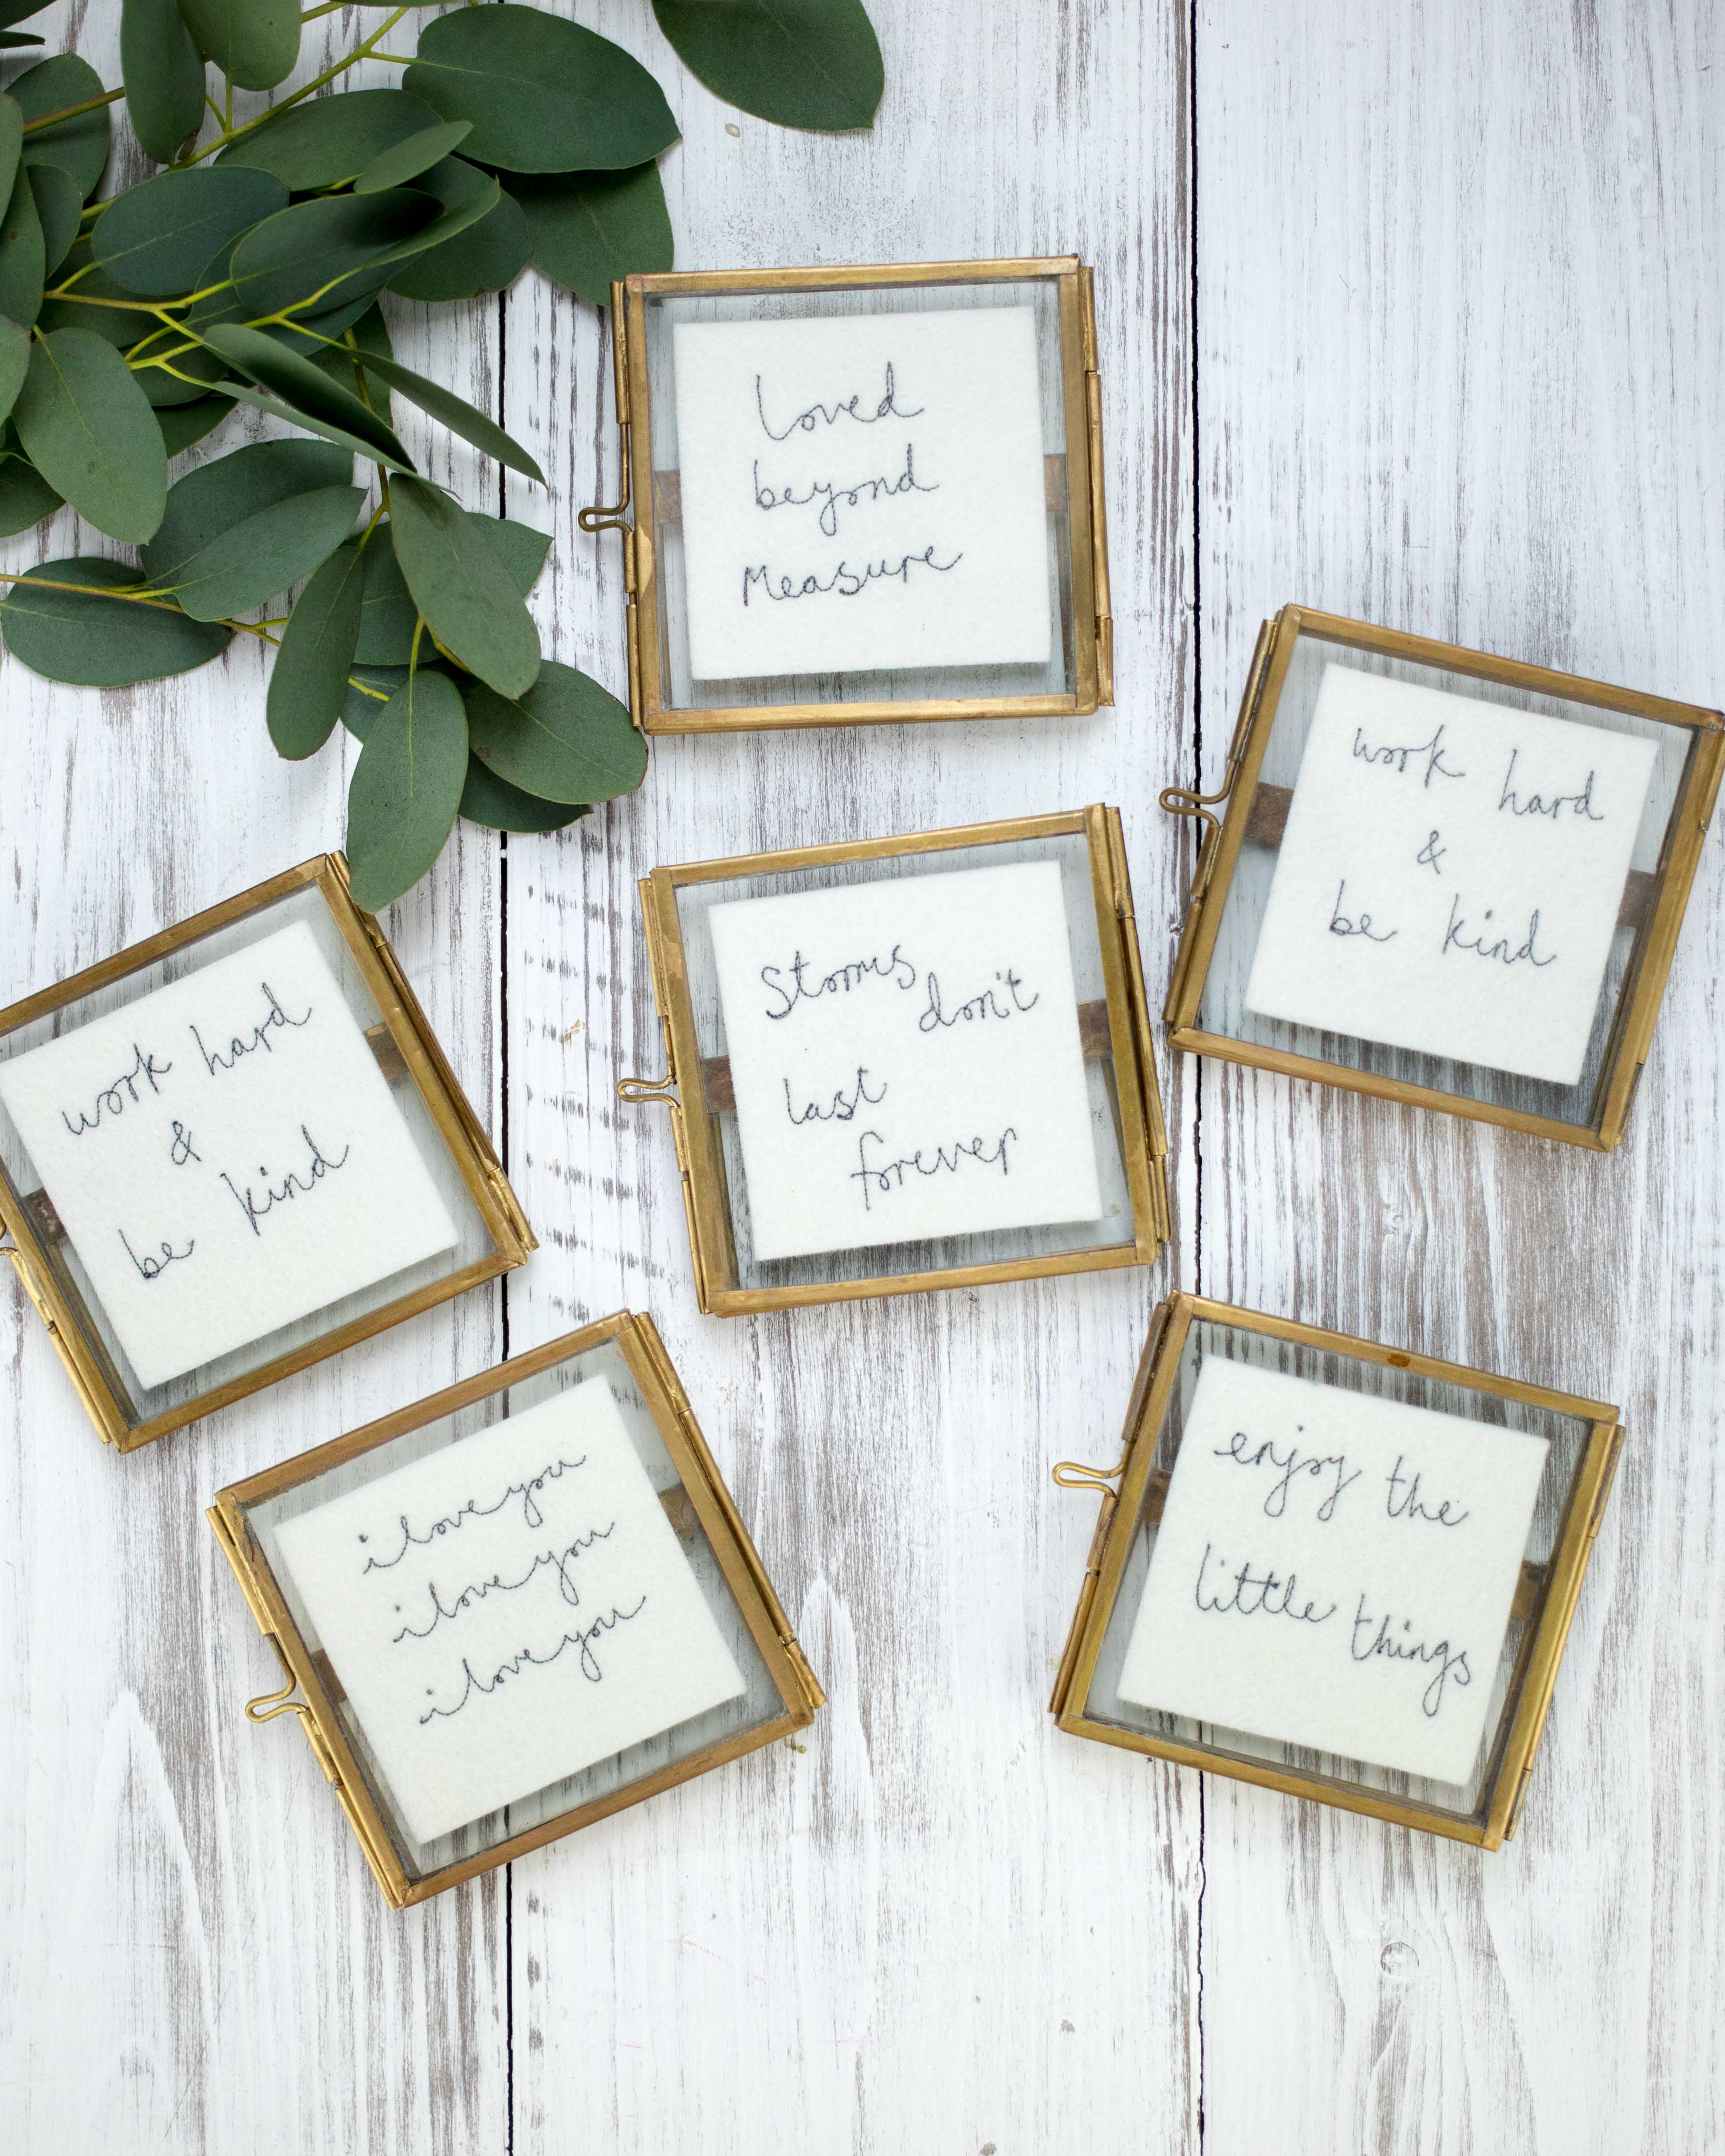 Small framed embroideries